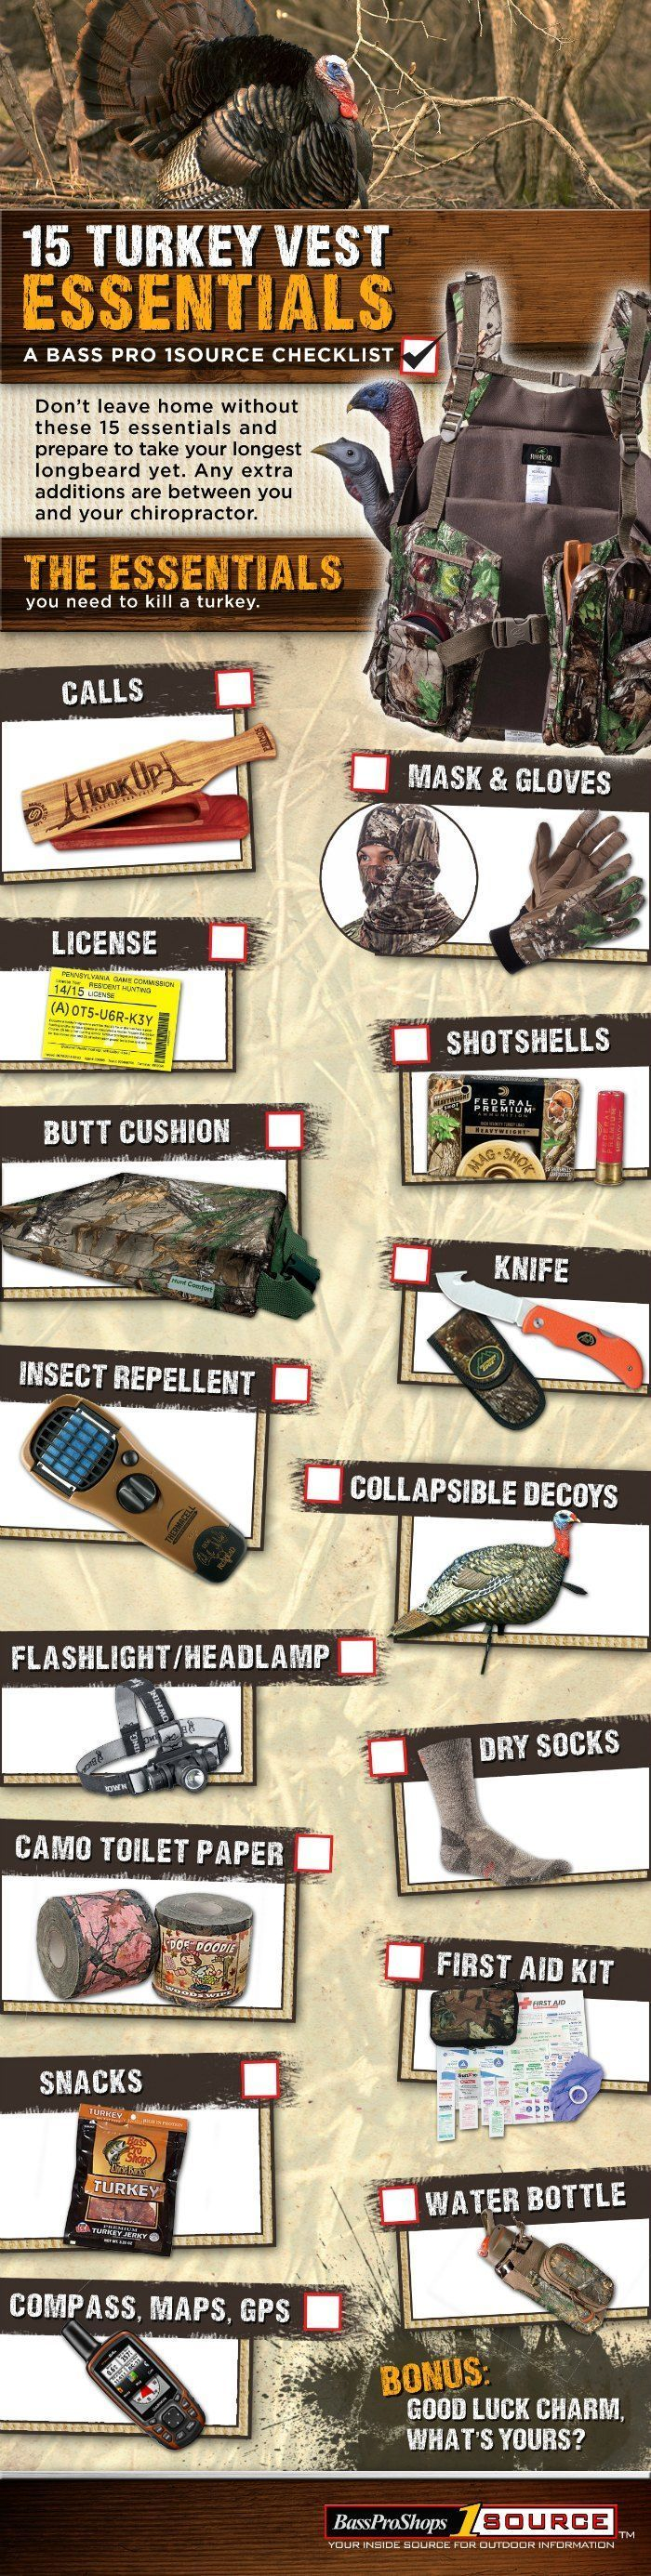 15 Turkey Vest Essentials (Checklist) // #BassProShops #1Source #Infographic #turkeyhunting. Looking For The Best Hunting Guns, Hunting Gear, and Hunting Storage For Your Next Season?  We Cover Deer Hunting, Duck Hunting, Elk, Turkey And Pheasant Hunts.  This Board Covers Lists, Photos, Accessories, And Homemade DIY Options For Mens And Womens Hunting Gear, Tactical Gear, And How To Use Your Backpack And Organize Your Gear.